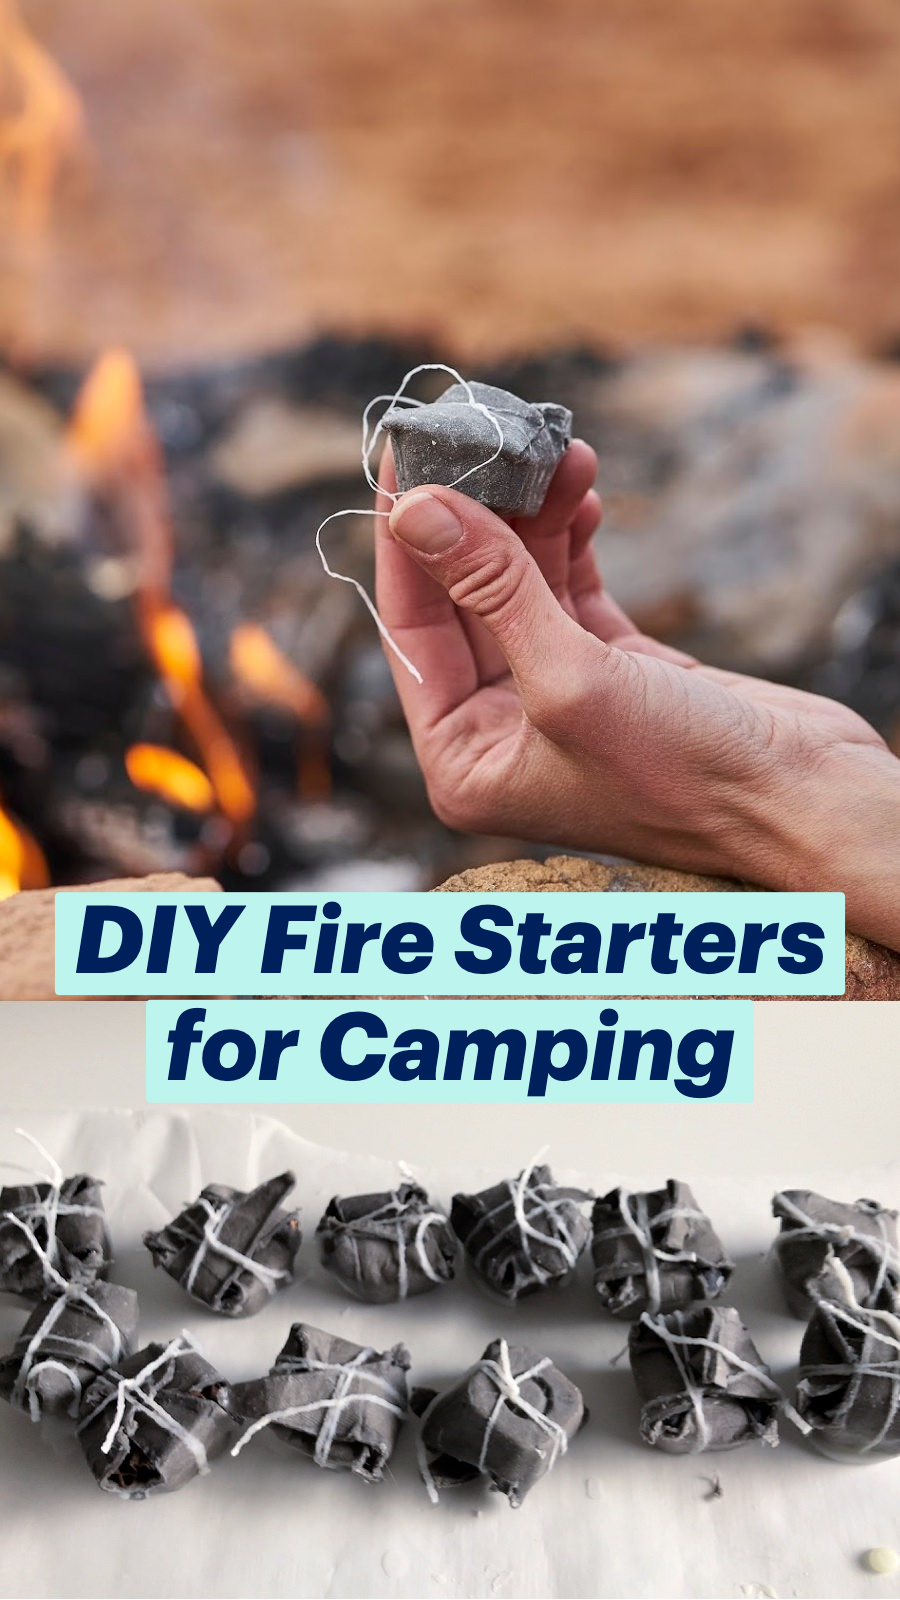 DIY Fire Starters for Camping